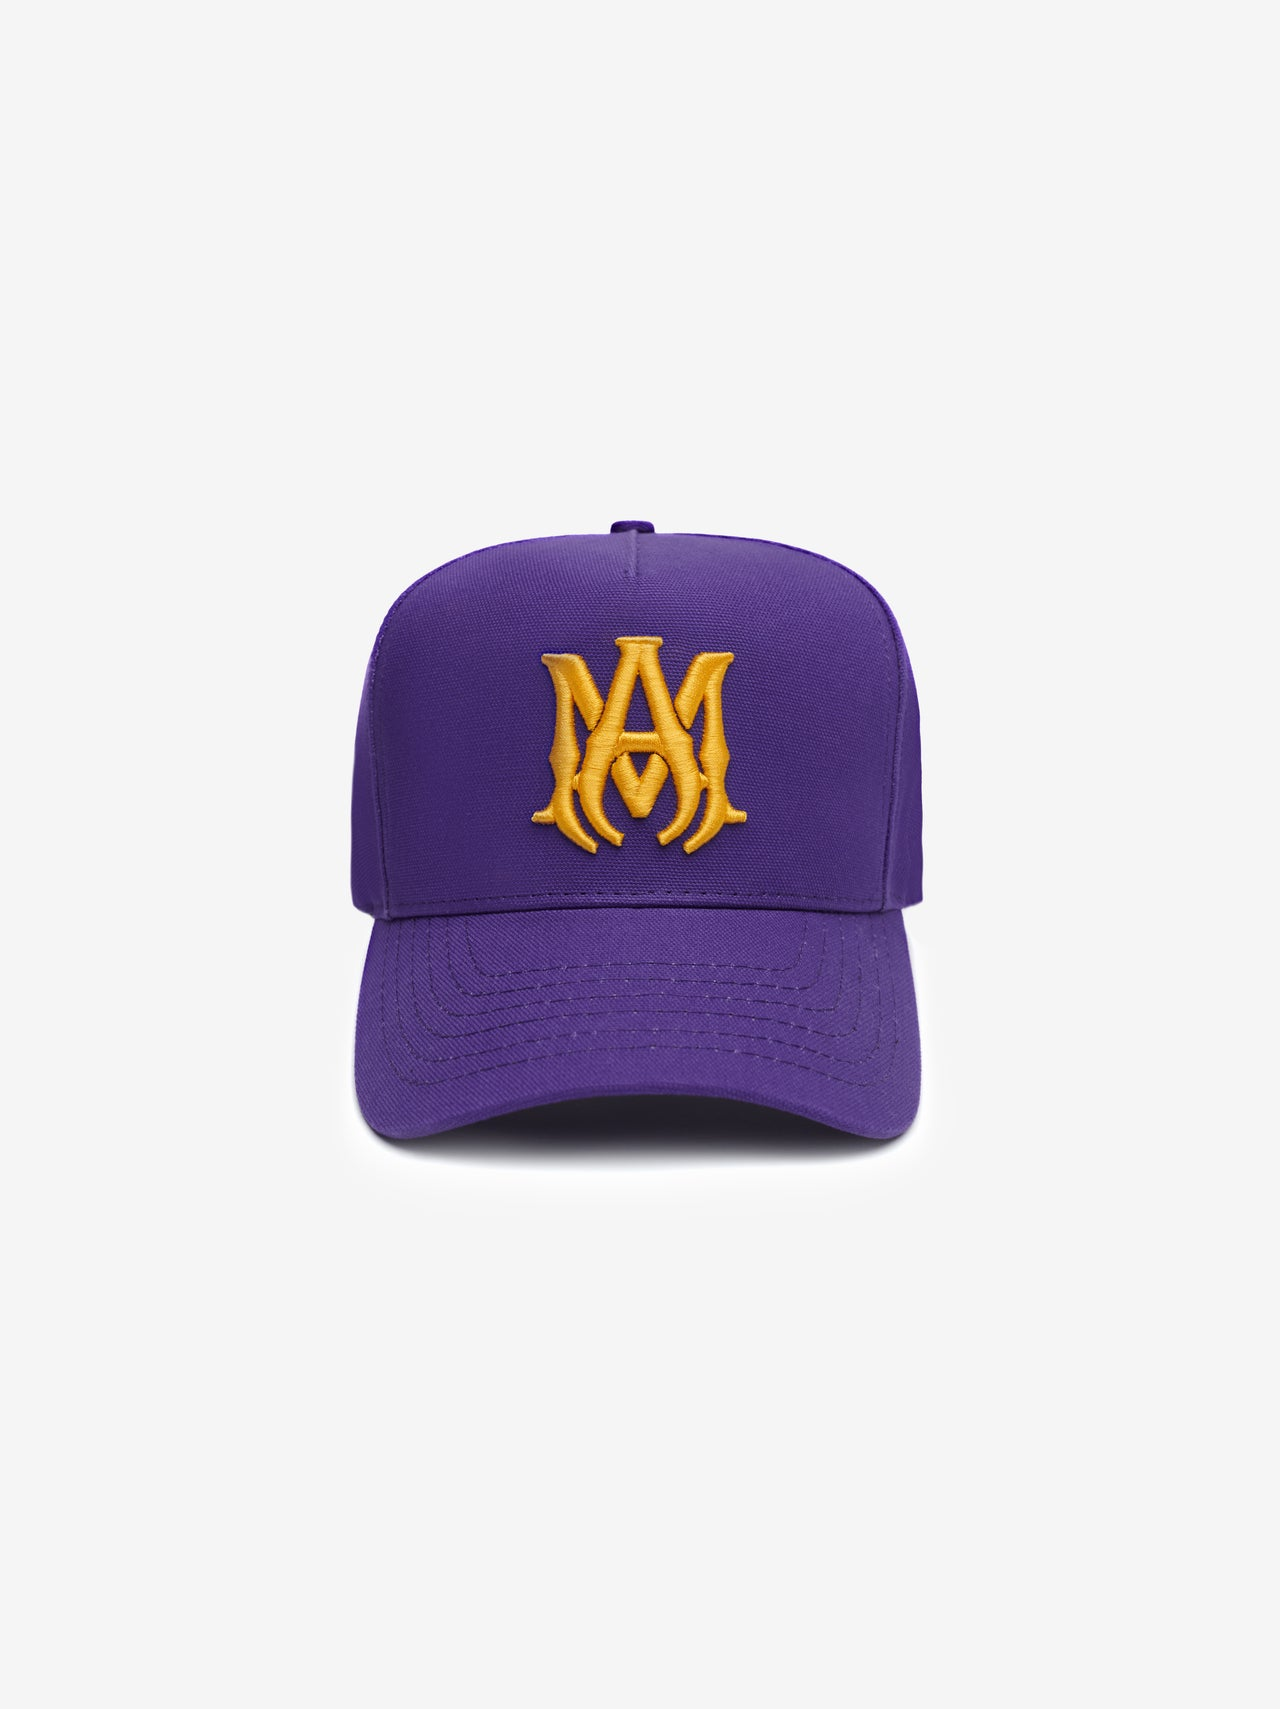 MA EMBROIDERED HAT - PURPLE